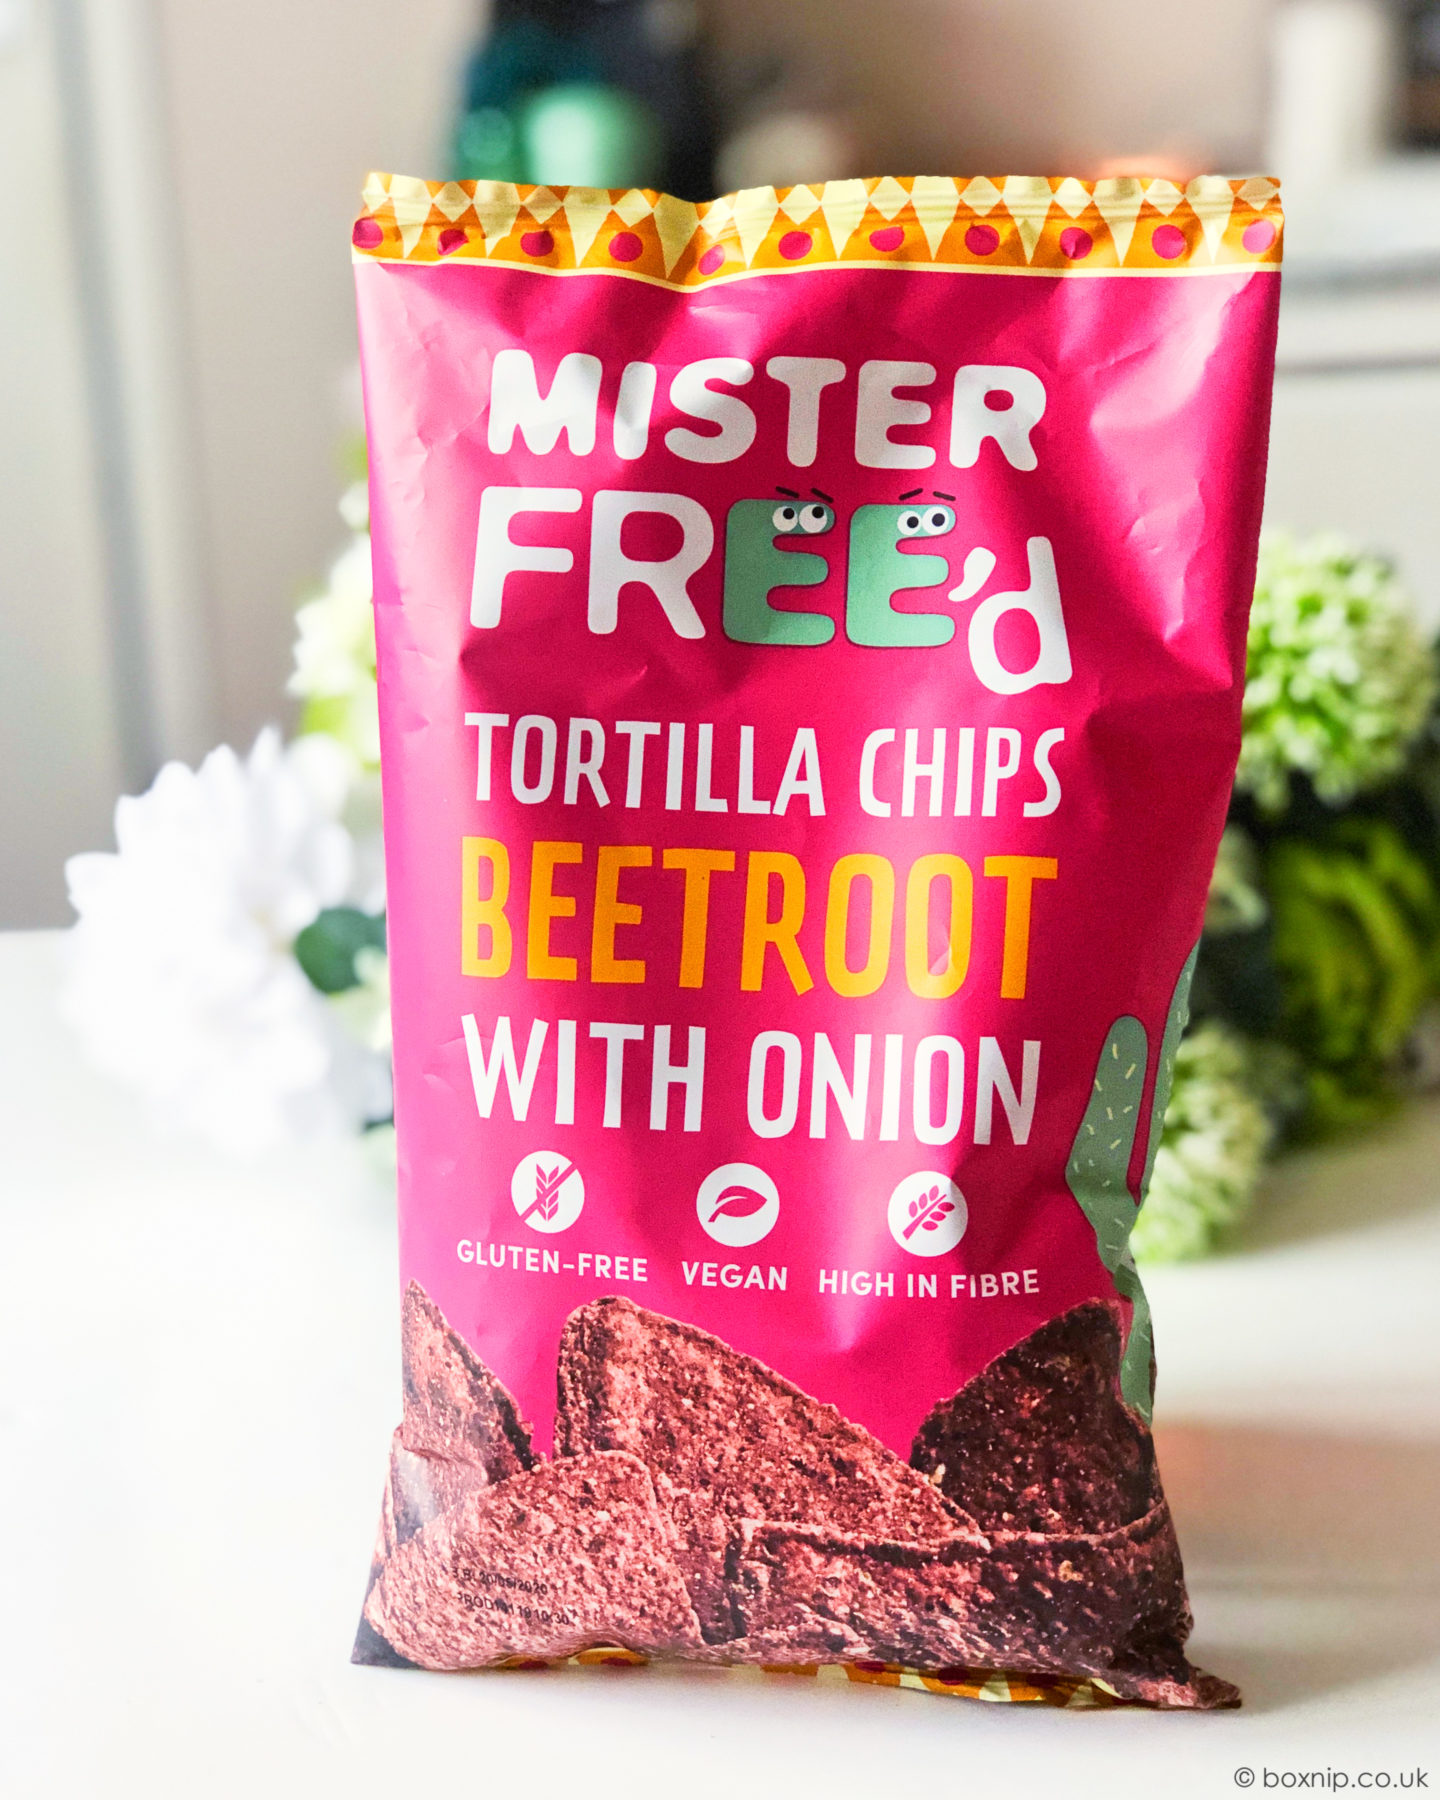 Mister Free'd Tortilla Chips - Beetroot with onion £1.99 - July 2019 Degusta Box